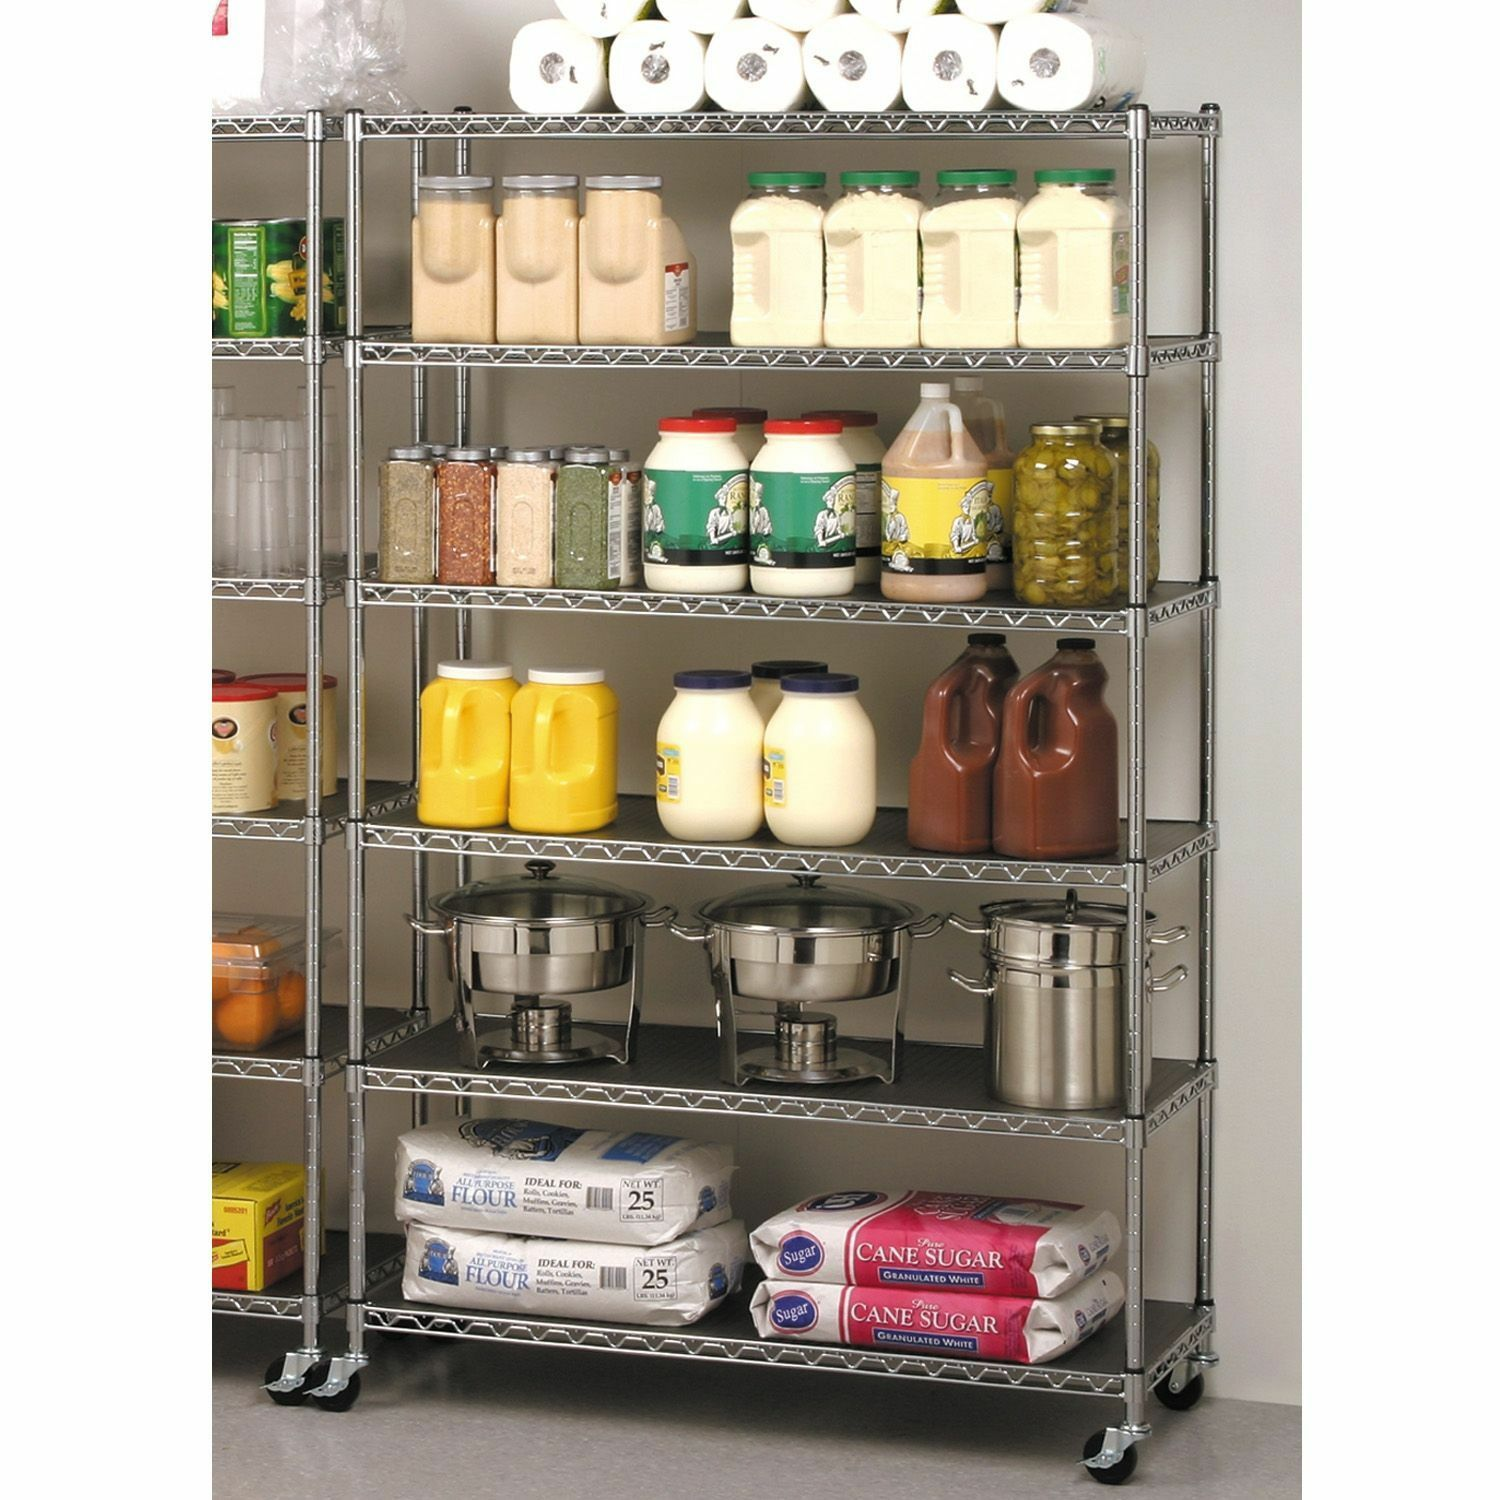 COMMERCIAL METAL STEEL ROLLING STORAGE SHELVING RACK CHROME WIRE SHELF  3  034  CASTER   eBay. COMMERCIAL METAL STEEL ROLLING STORAGE SHELVING RACK CHROME WIRE